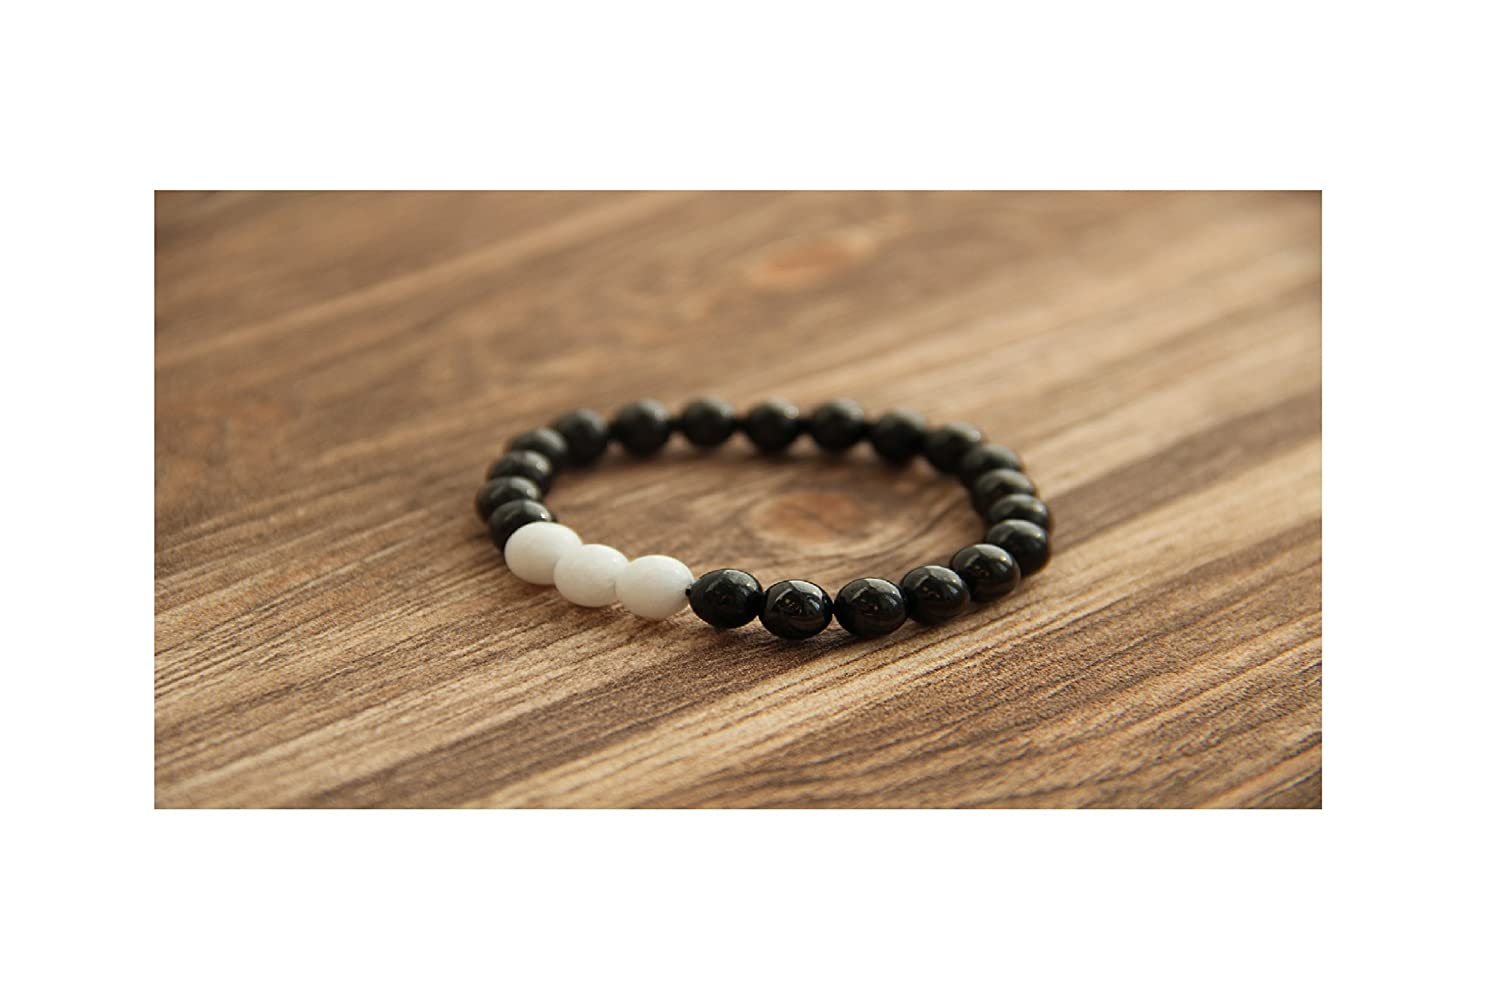 Karelian Heritage: Shungite beaded bracelet with 3 round white jade beads BO21